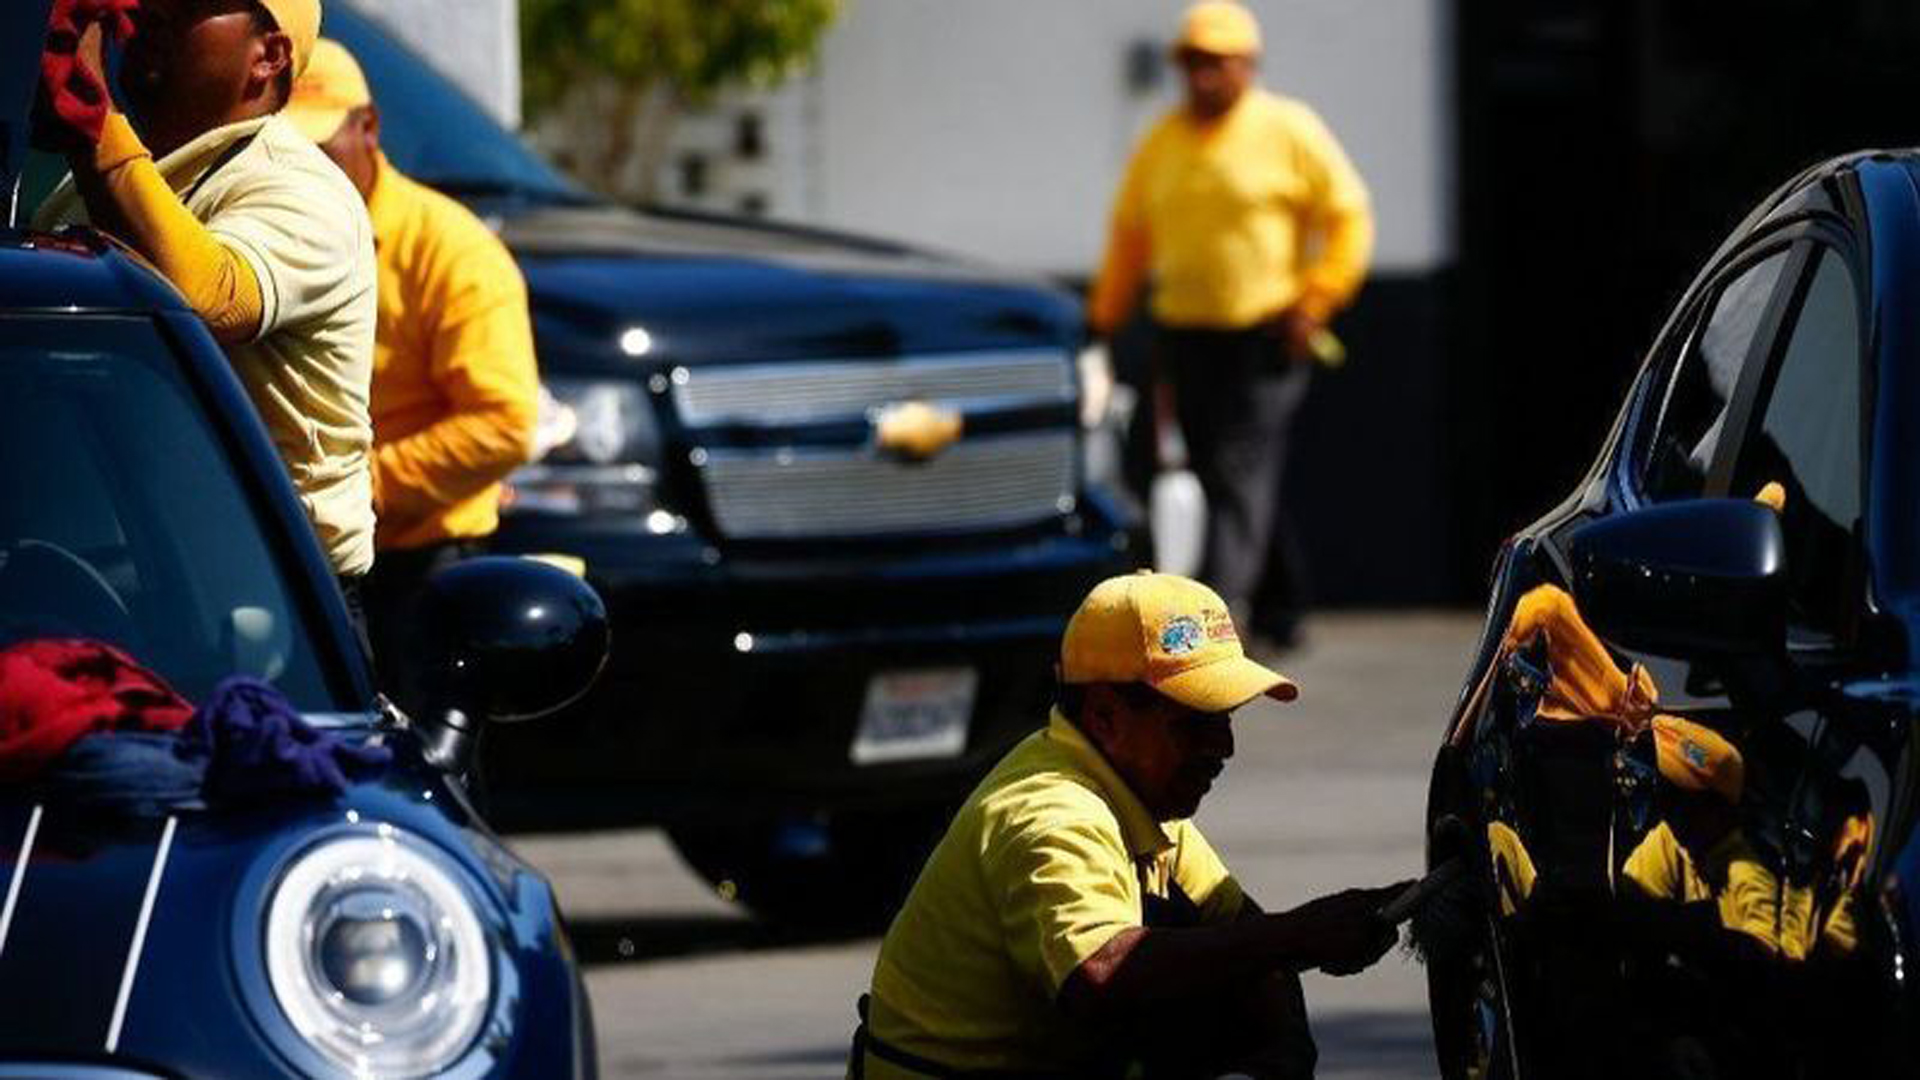 Cars are washed and cleaned at the Playa Vista Car Wash in Culver City. (Credit: Kent Nishimura / Los Angeles Times)